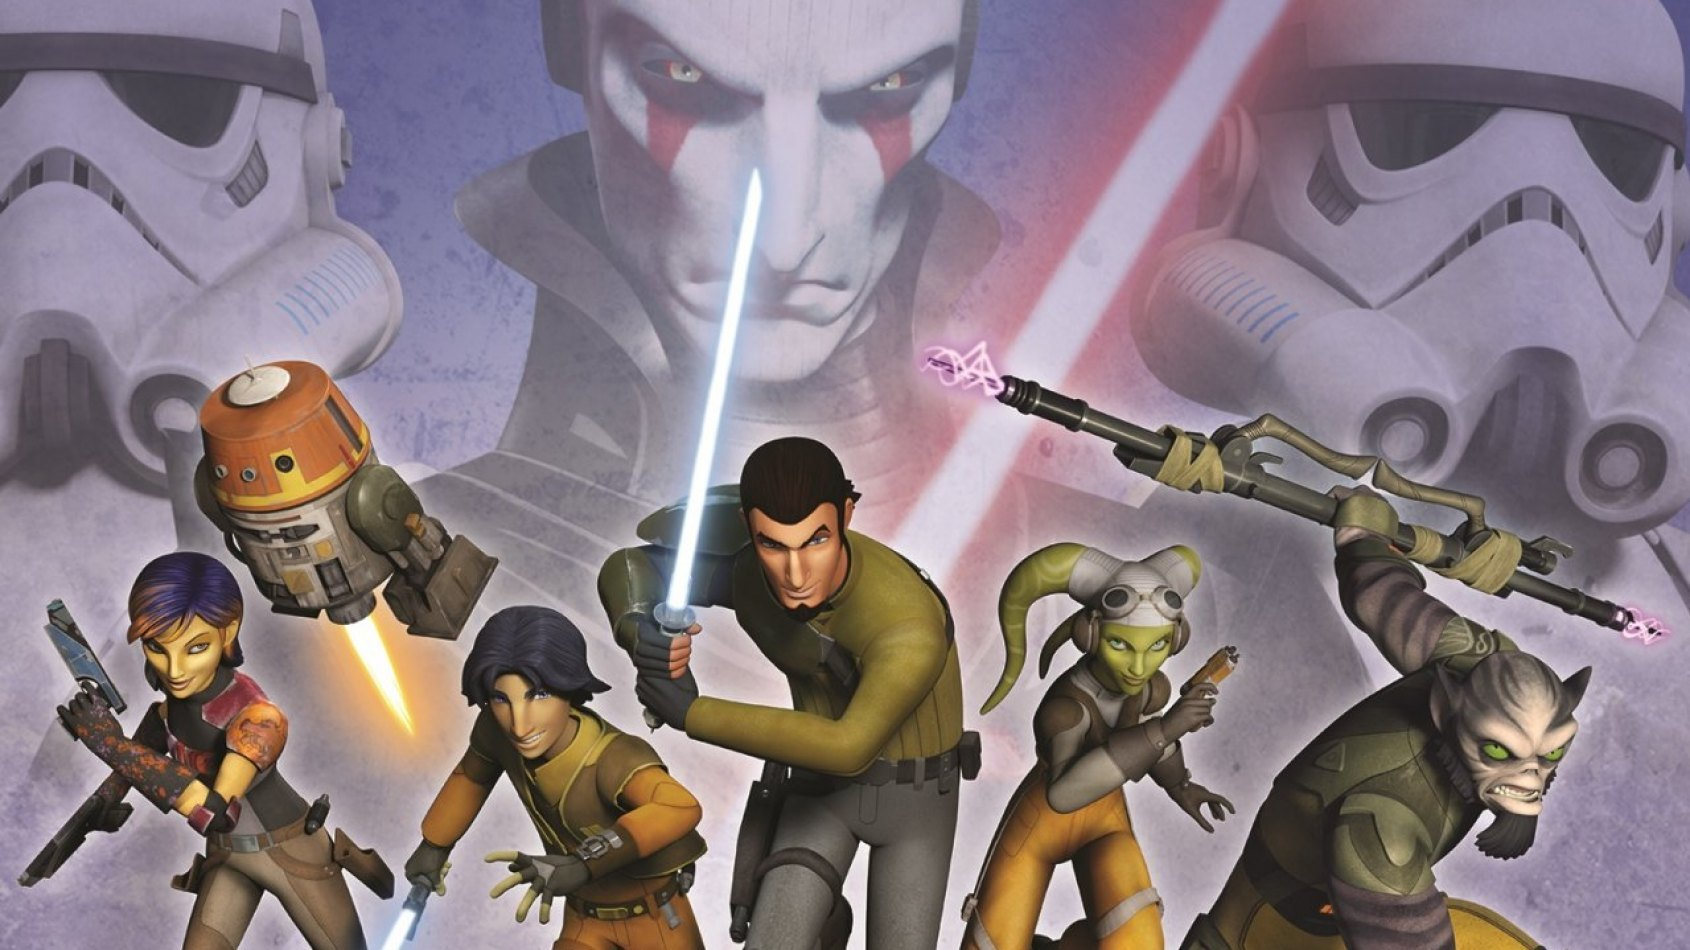 Delcourt : Sortie de Star Wars Rebels 3